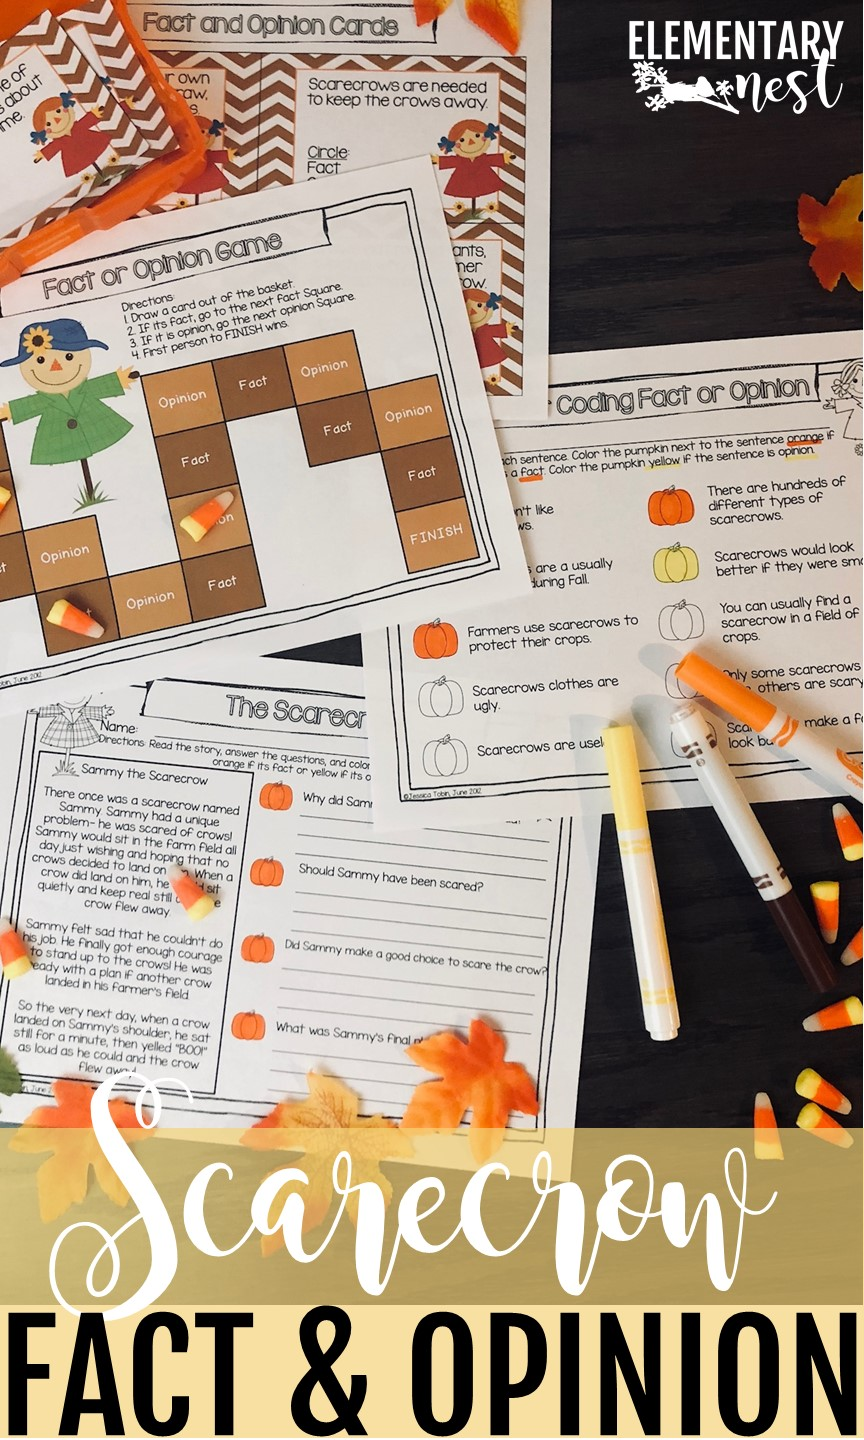 Fact and opinion activities for teaching children.